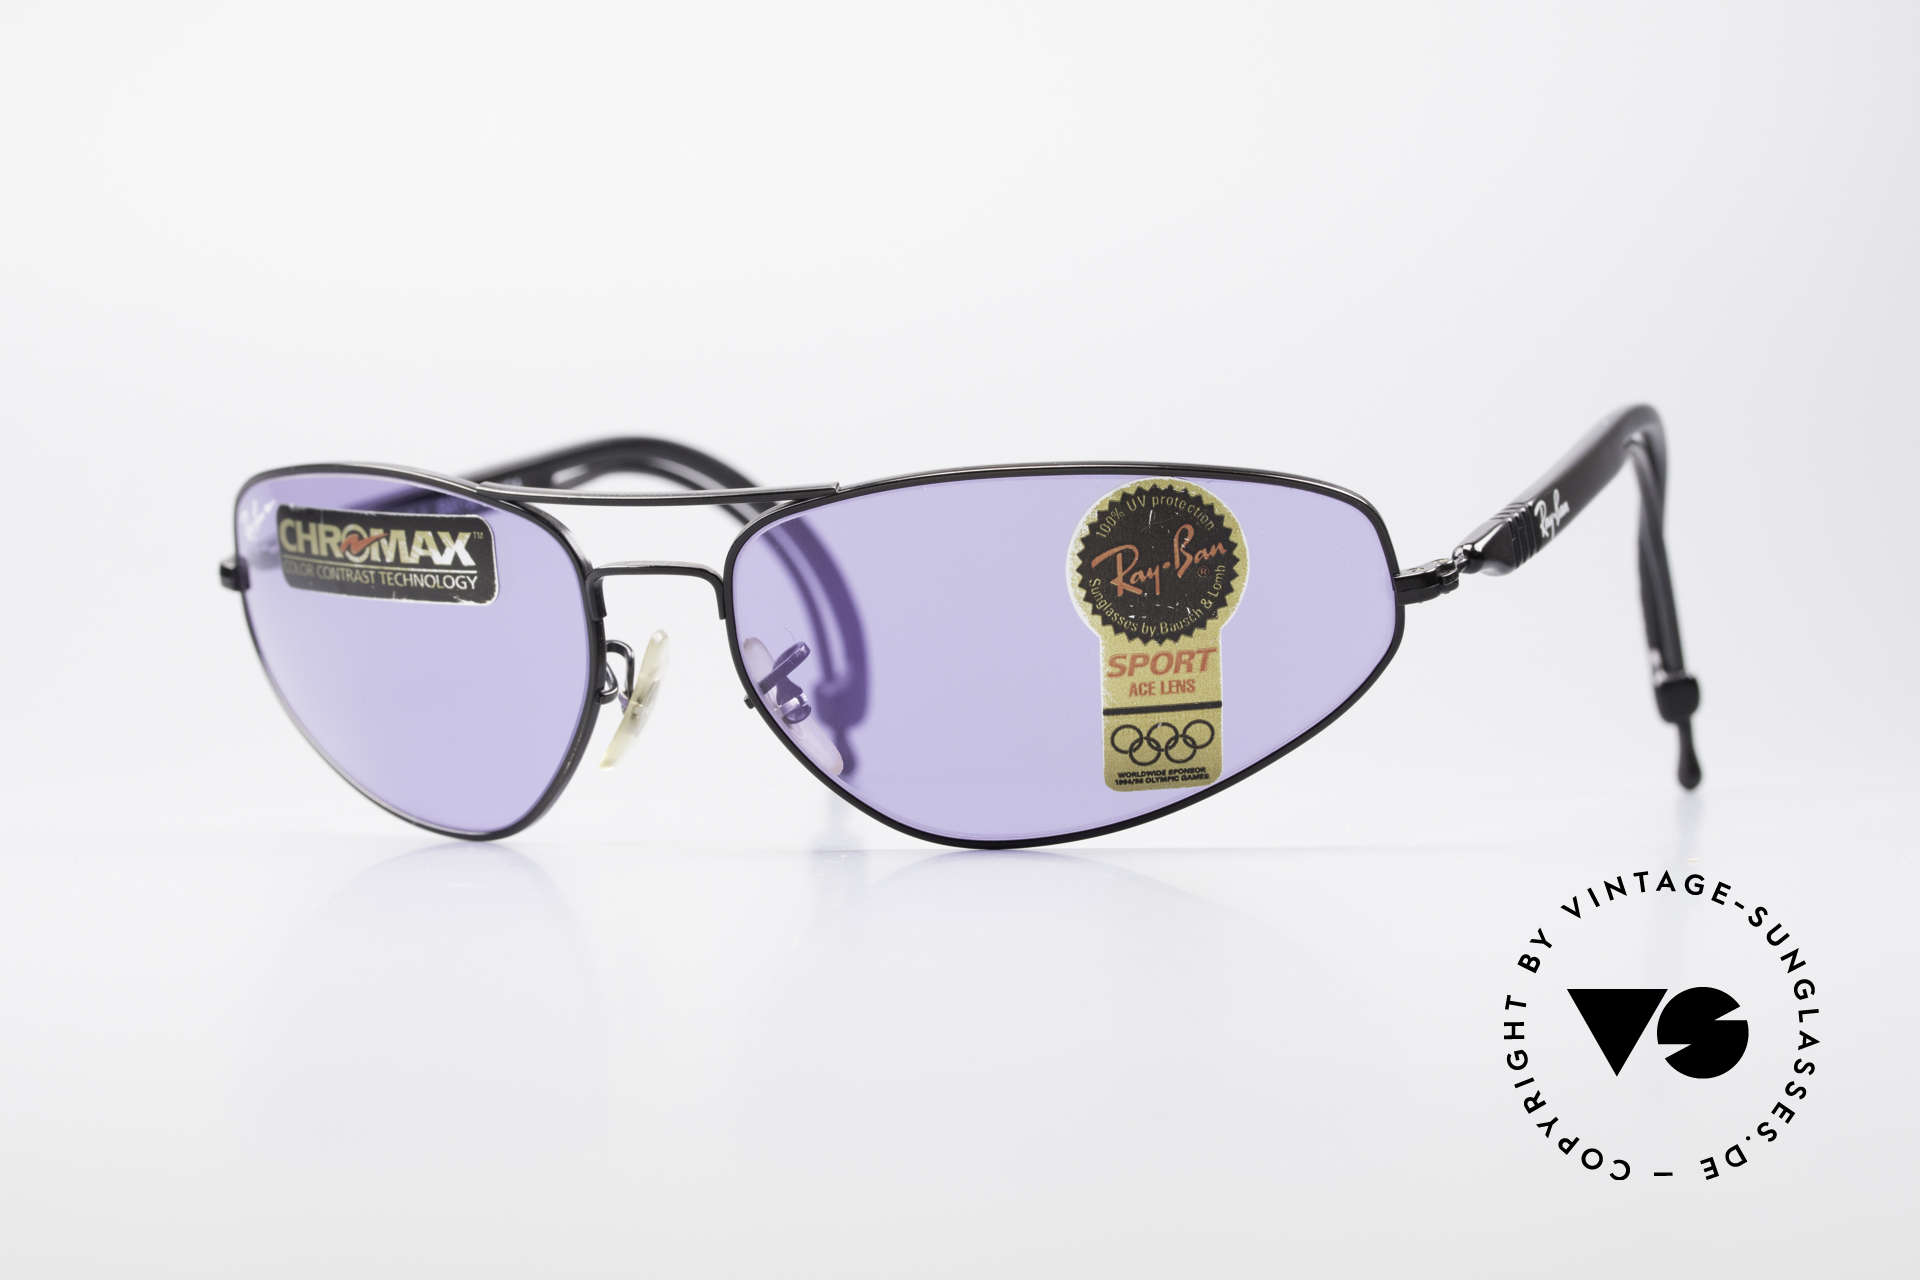 Ray Ban Sport Series 3 ACE Chromax B&L Sun Lenses, Ray-Ban SportSeries 3: vintage 90's sports shades, Made for Men